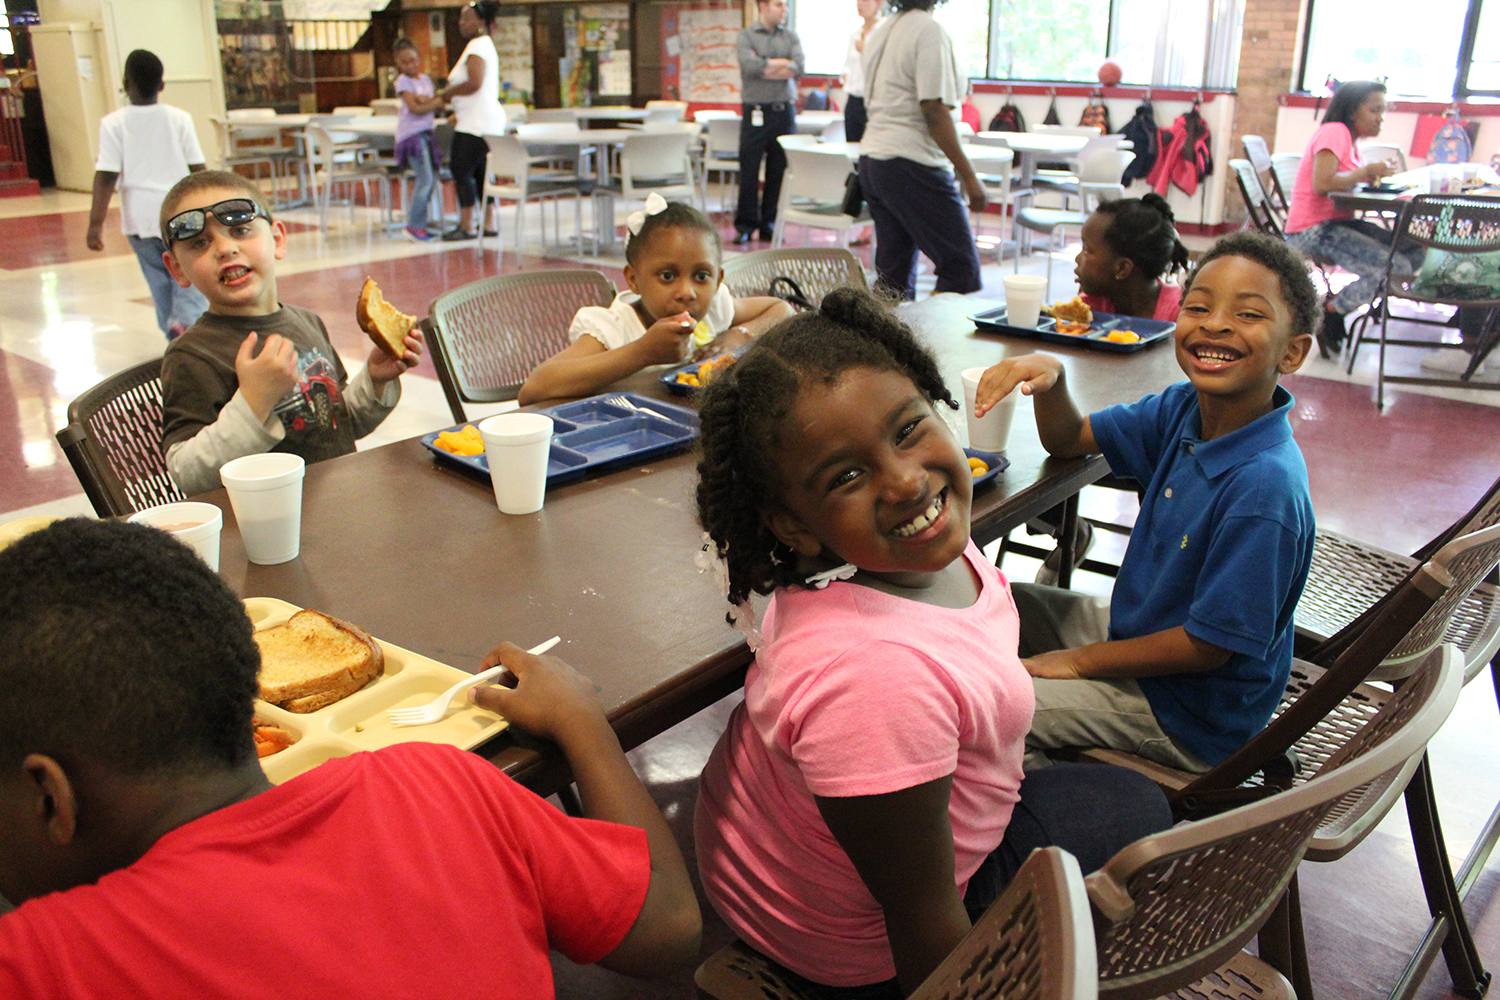 The children are all smiles at the Fleetwood Jourdain Community Center in Evanston after receiving eating an after-school meal.  The City of Evanston, sponsor of the Center's At-Risk After-School Meals program is a recent recipient of a No Kid Hungry after-school meals expansion grant.